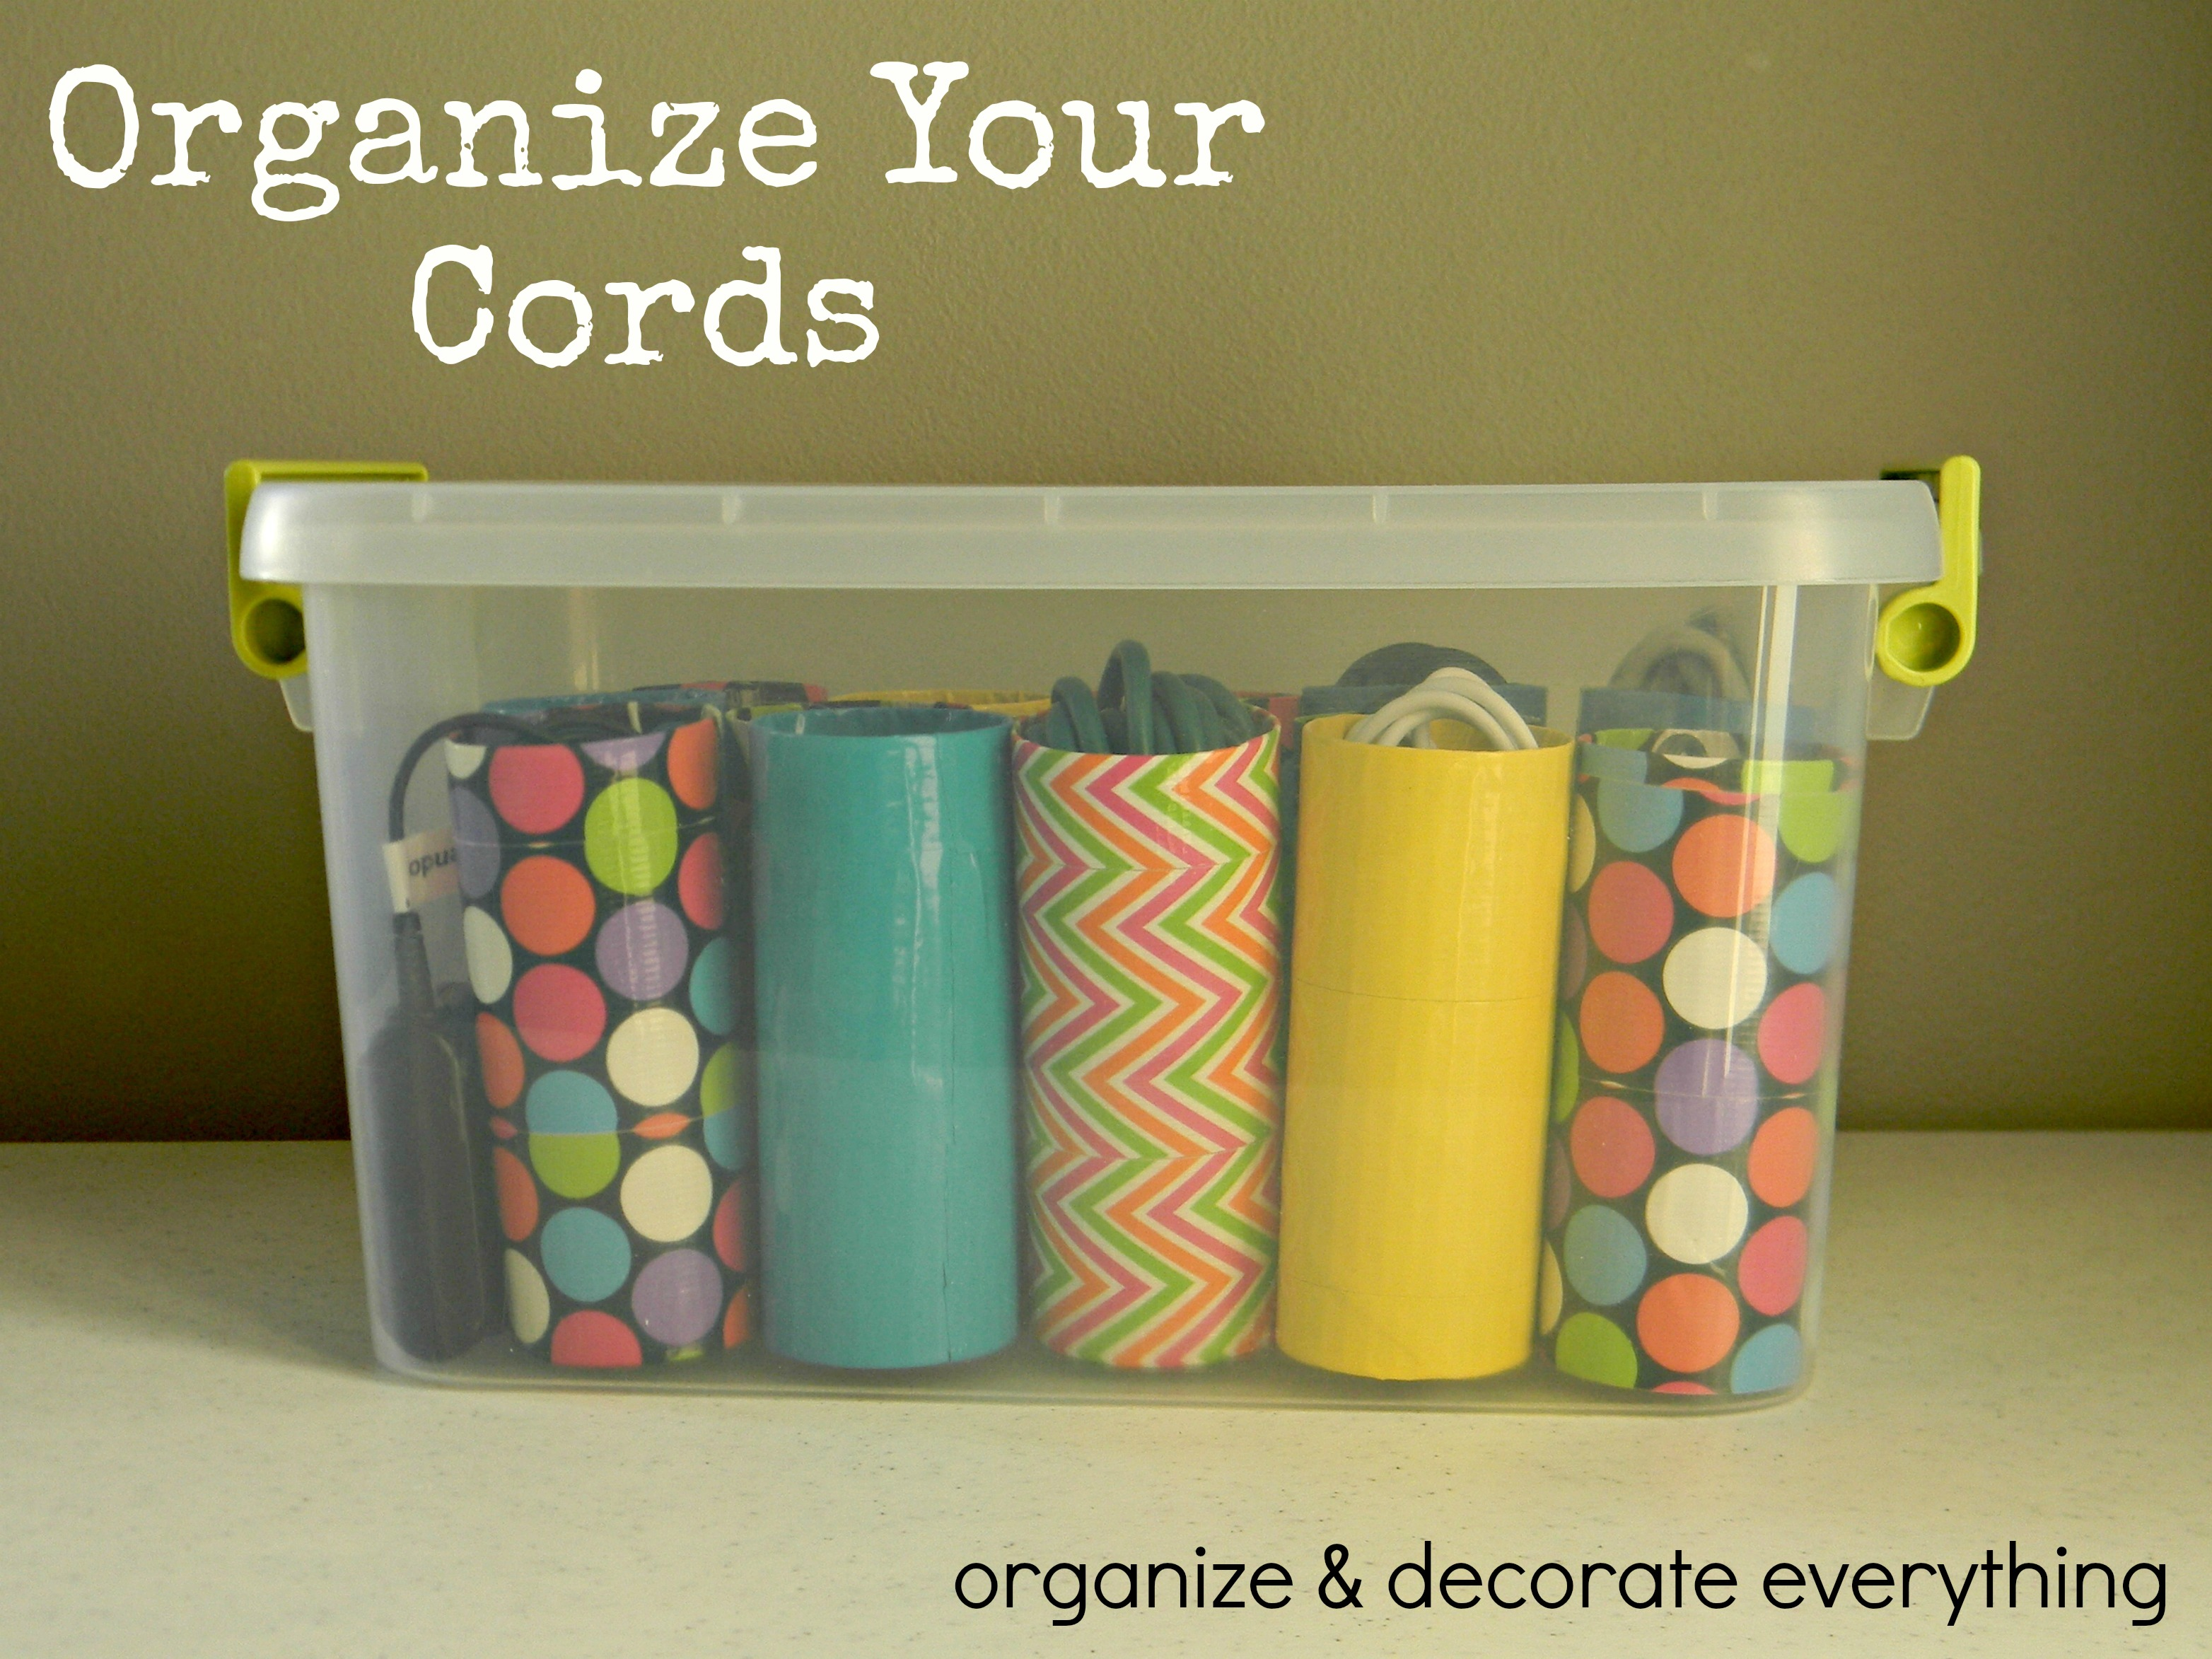 Organize Your Cords - Organize and Decorate Everything